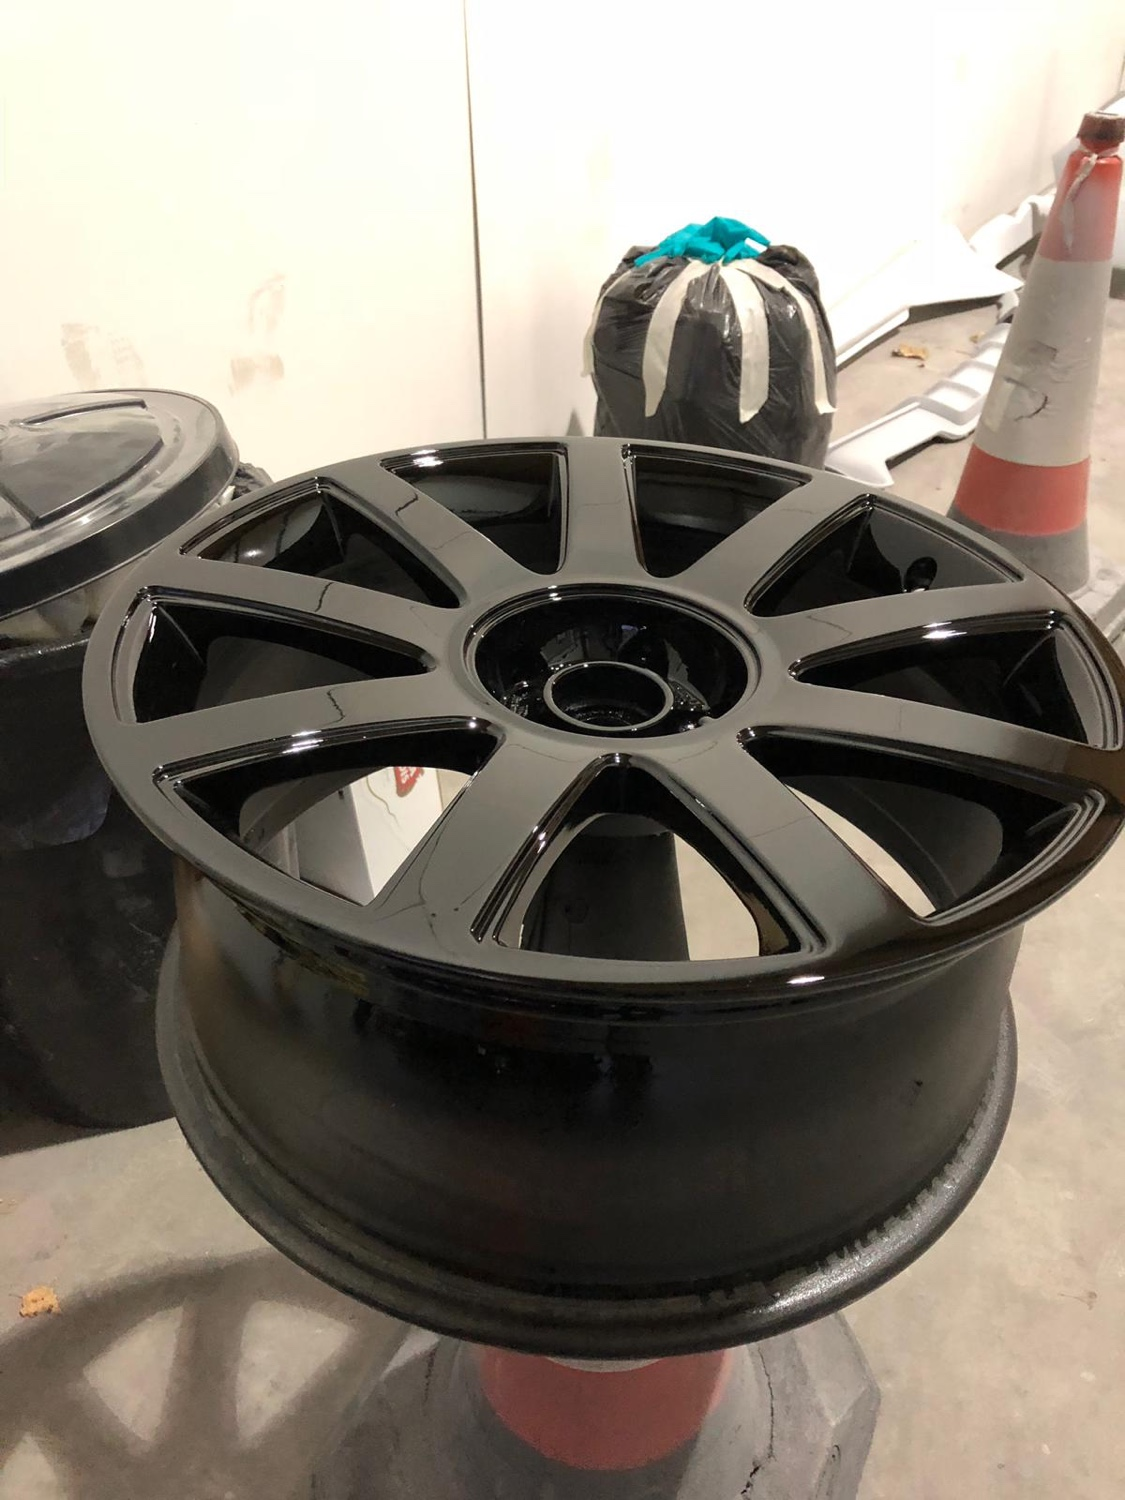 Which is better, powdercoating or painting stock rims